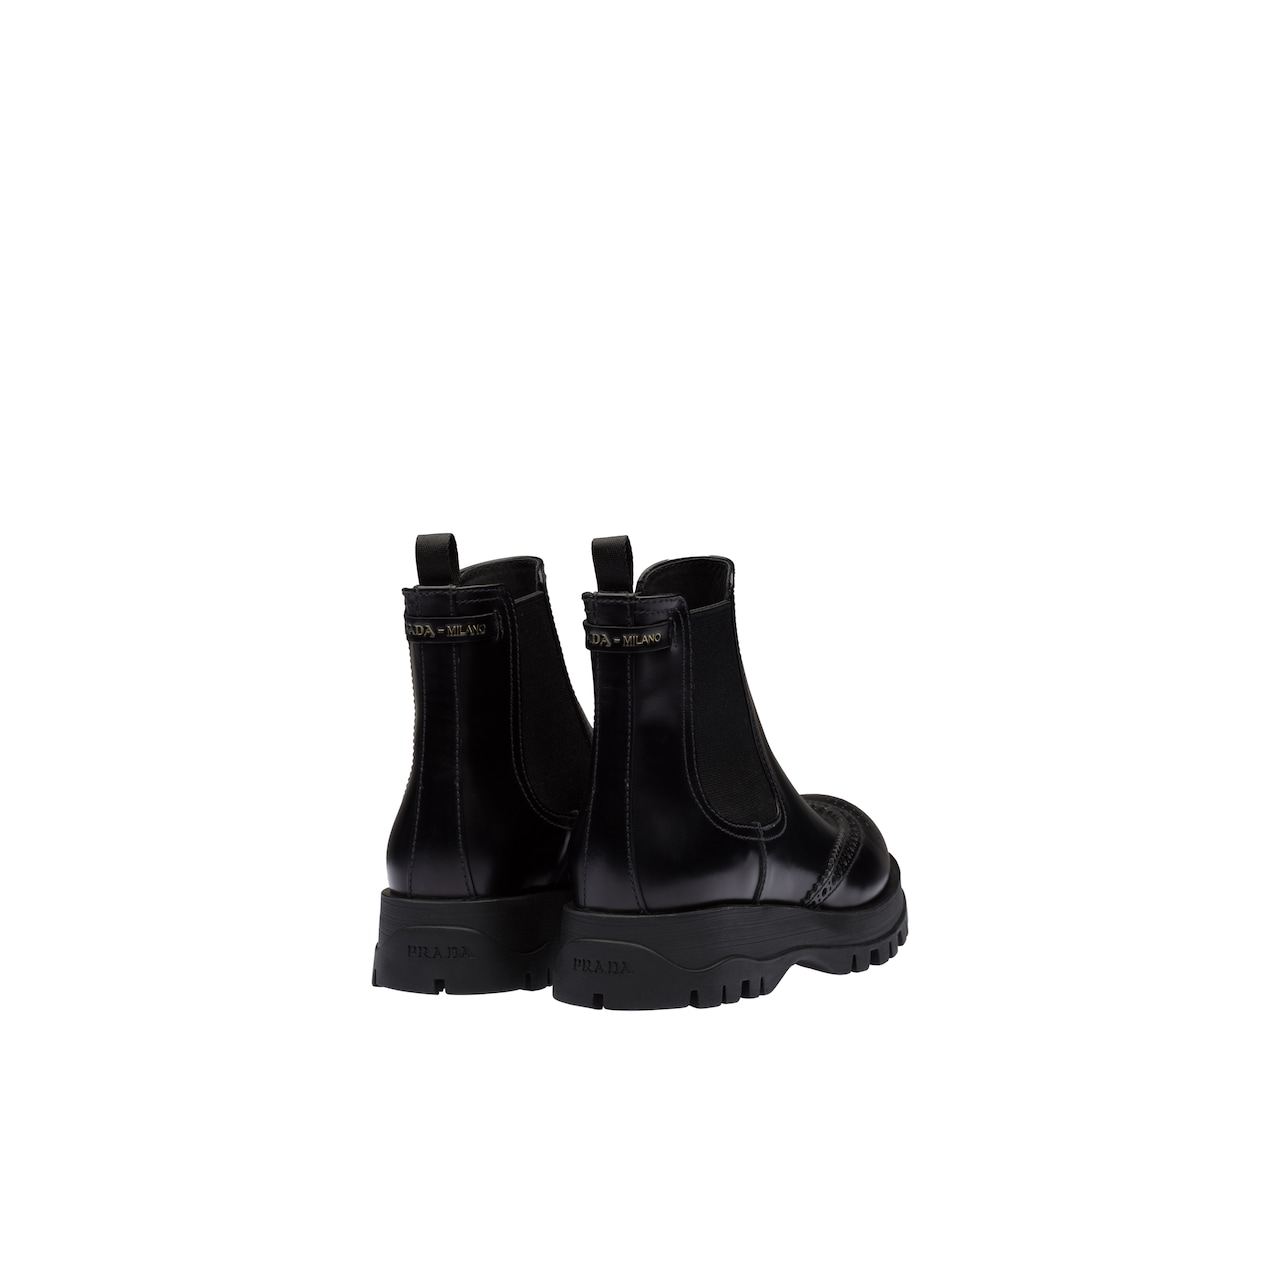 Prada Brushed leather booties 5